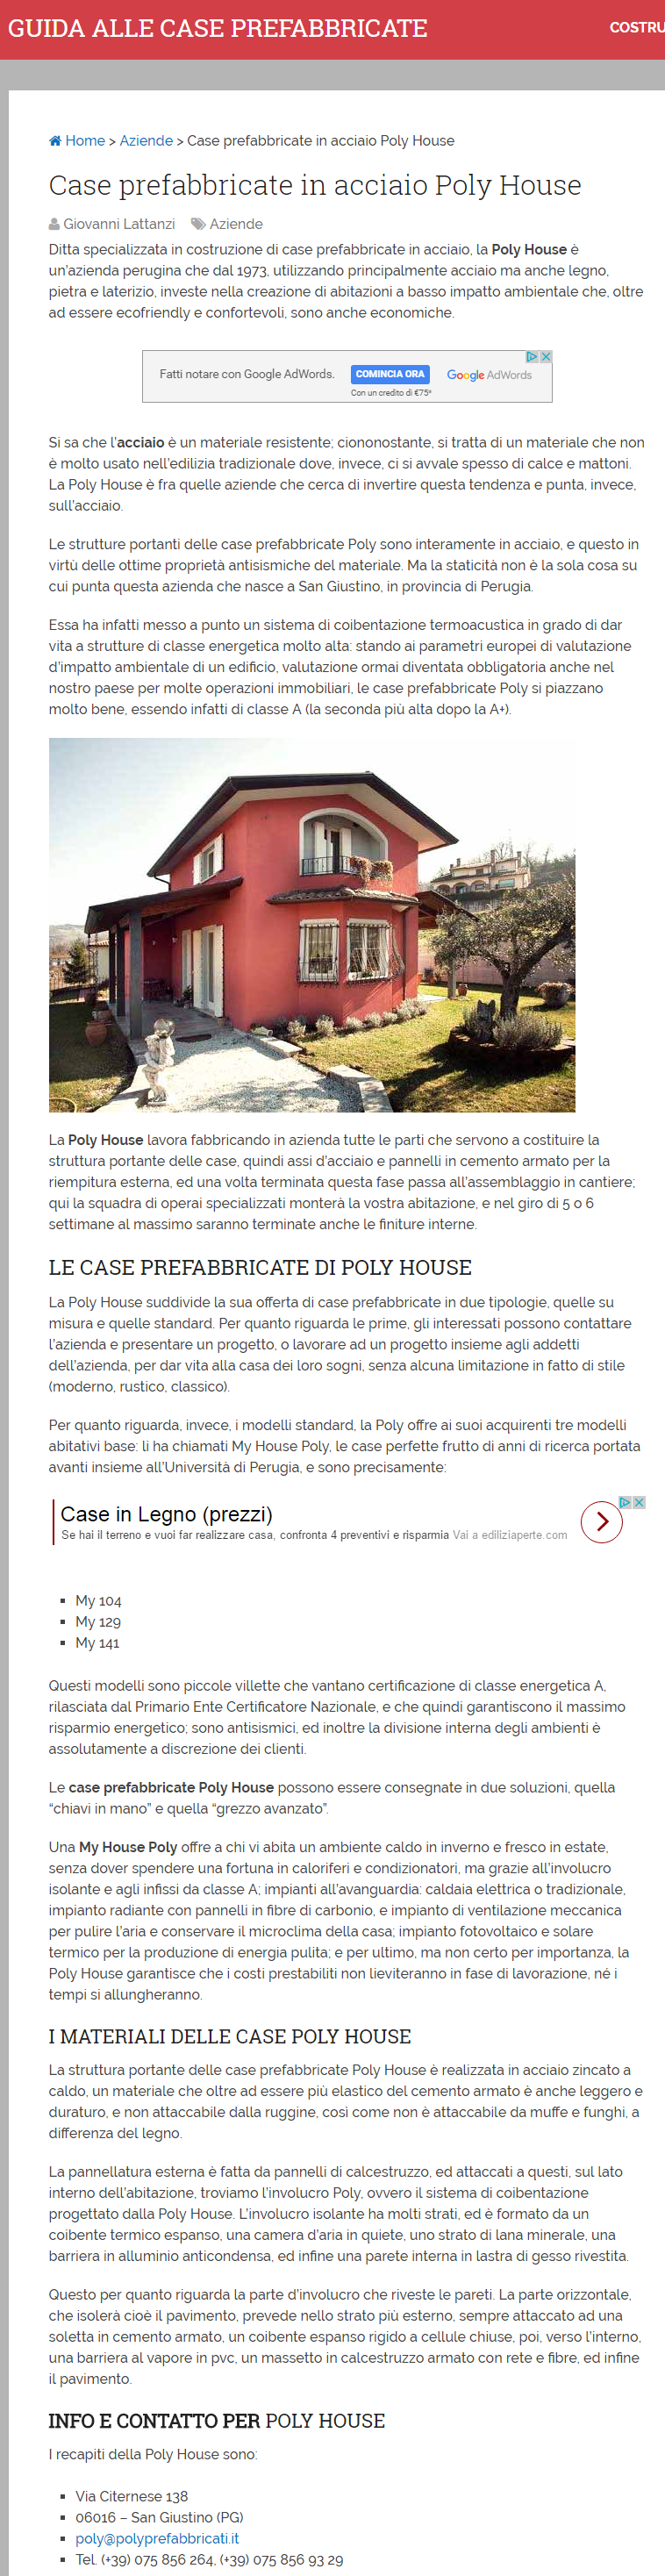 FireShot Capture 24 - Case prefabbricate Poly House_ - http___www.guidacaseprefabbricate.